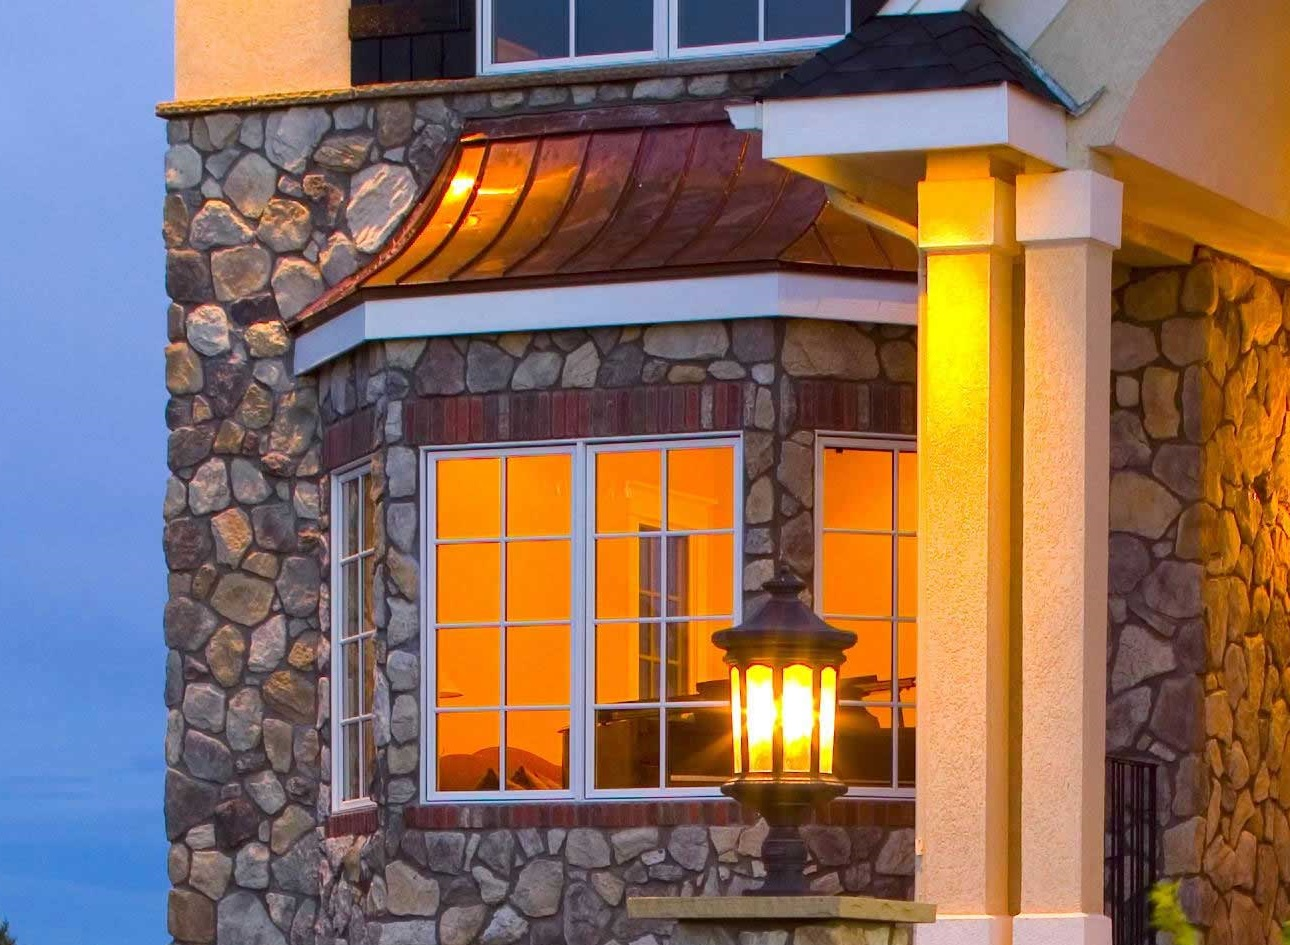 Bay window with stone accents in luxury home.